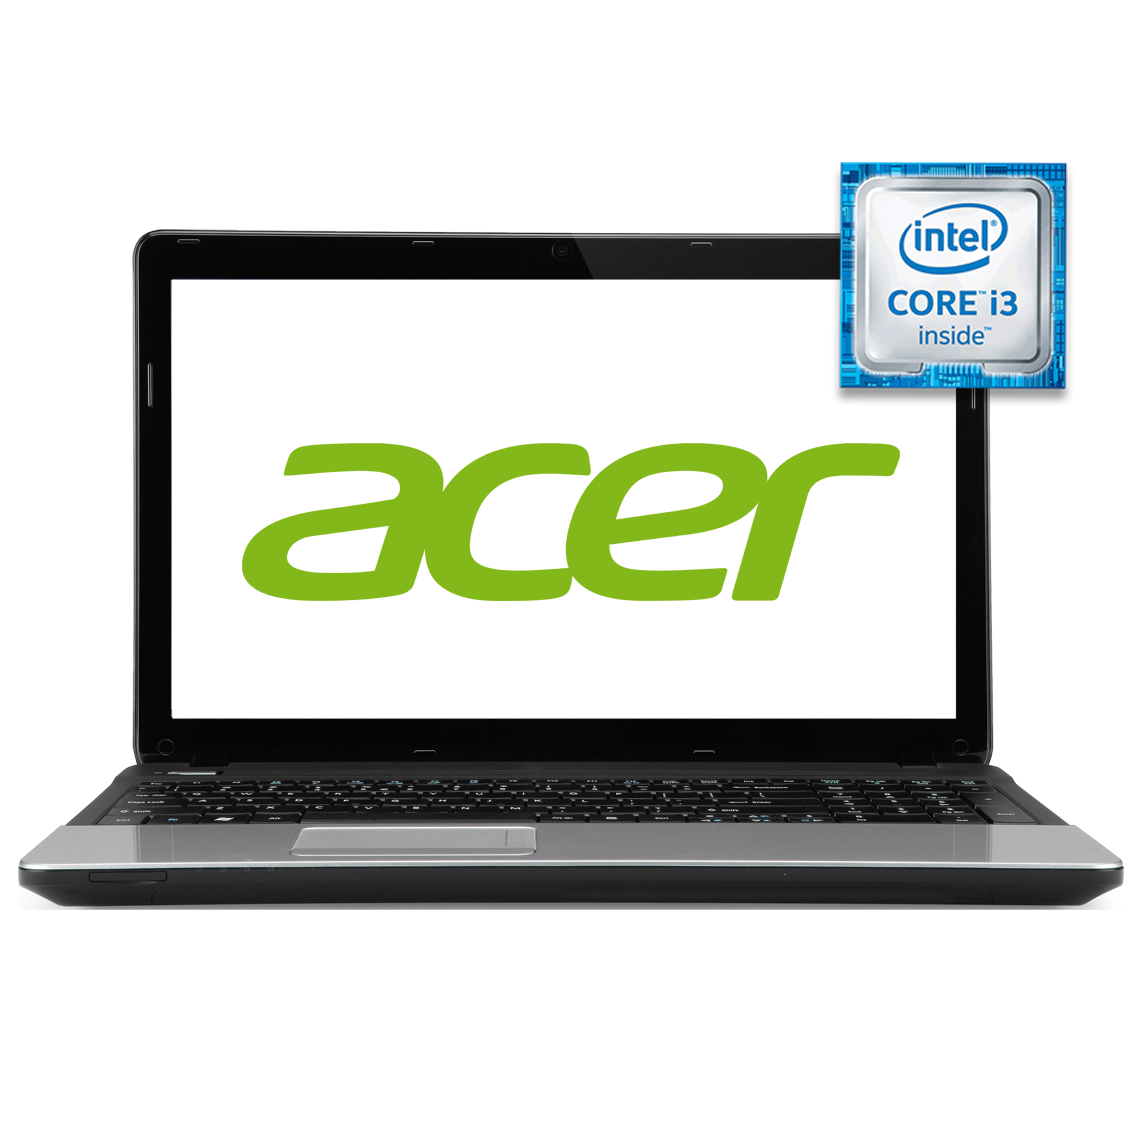 Acer - 15 inch Core i3 2nd Gen